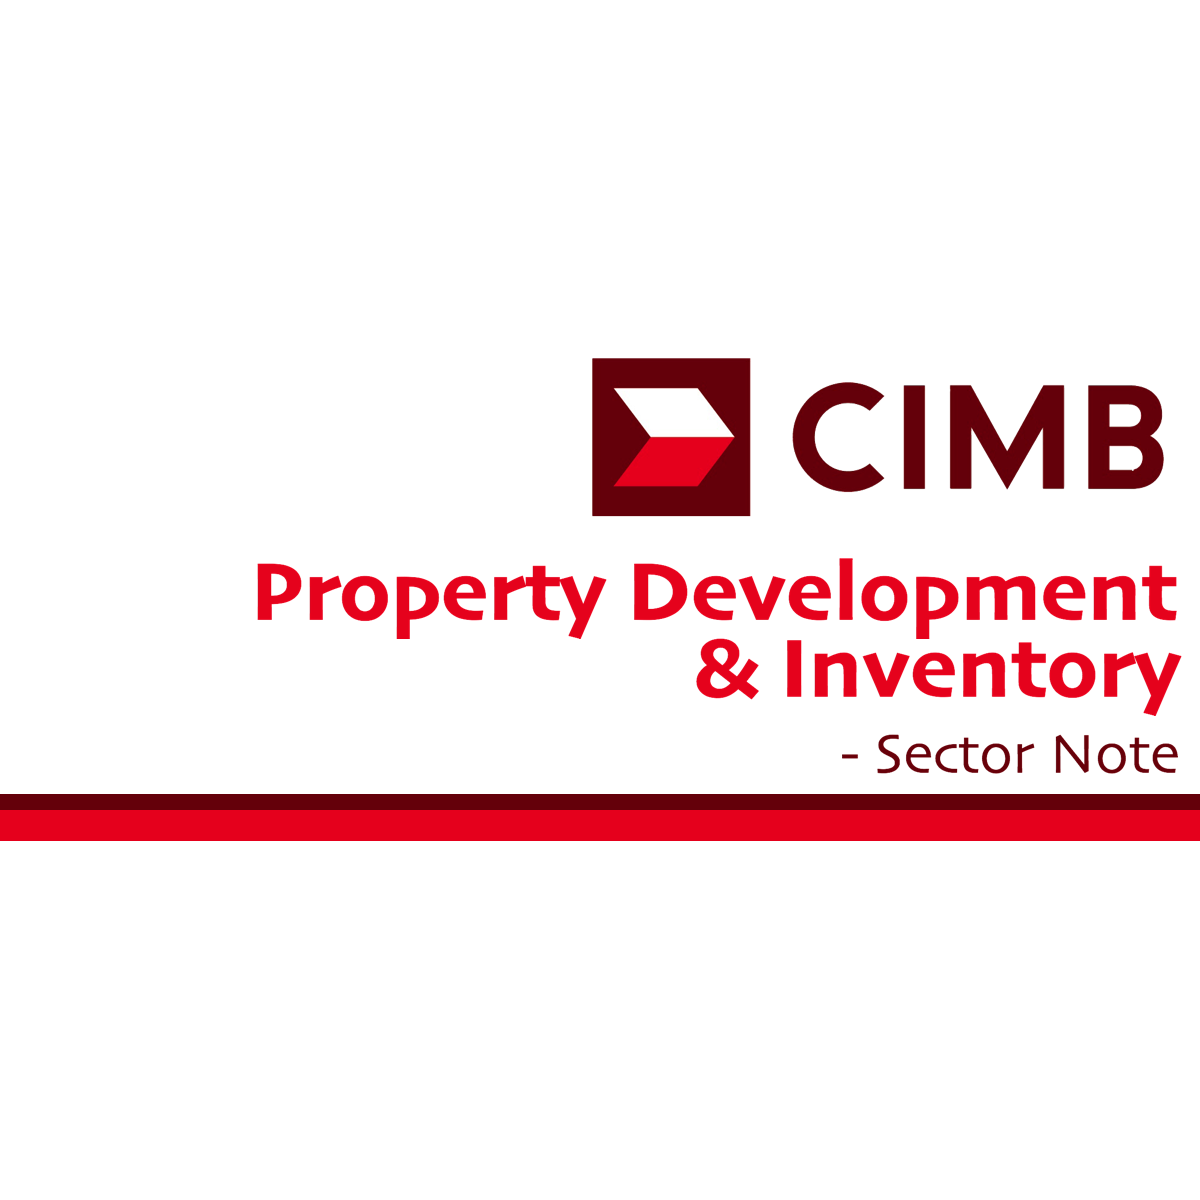 Singapore Property Development & Inventory - CIMB Research 2018-01-15: Robust Outlook